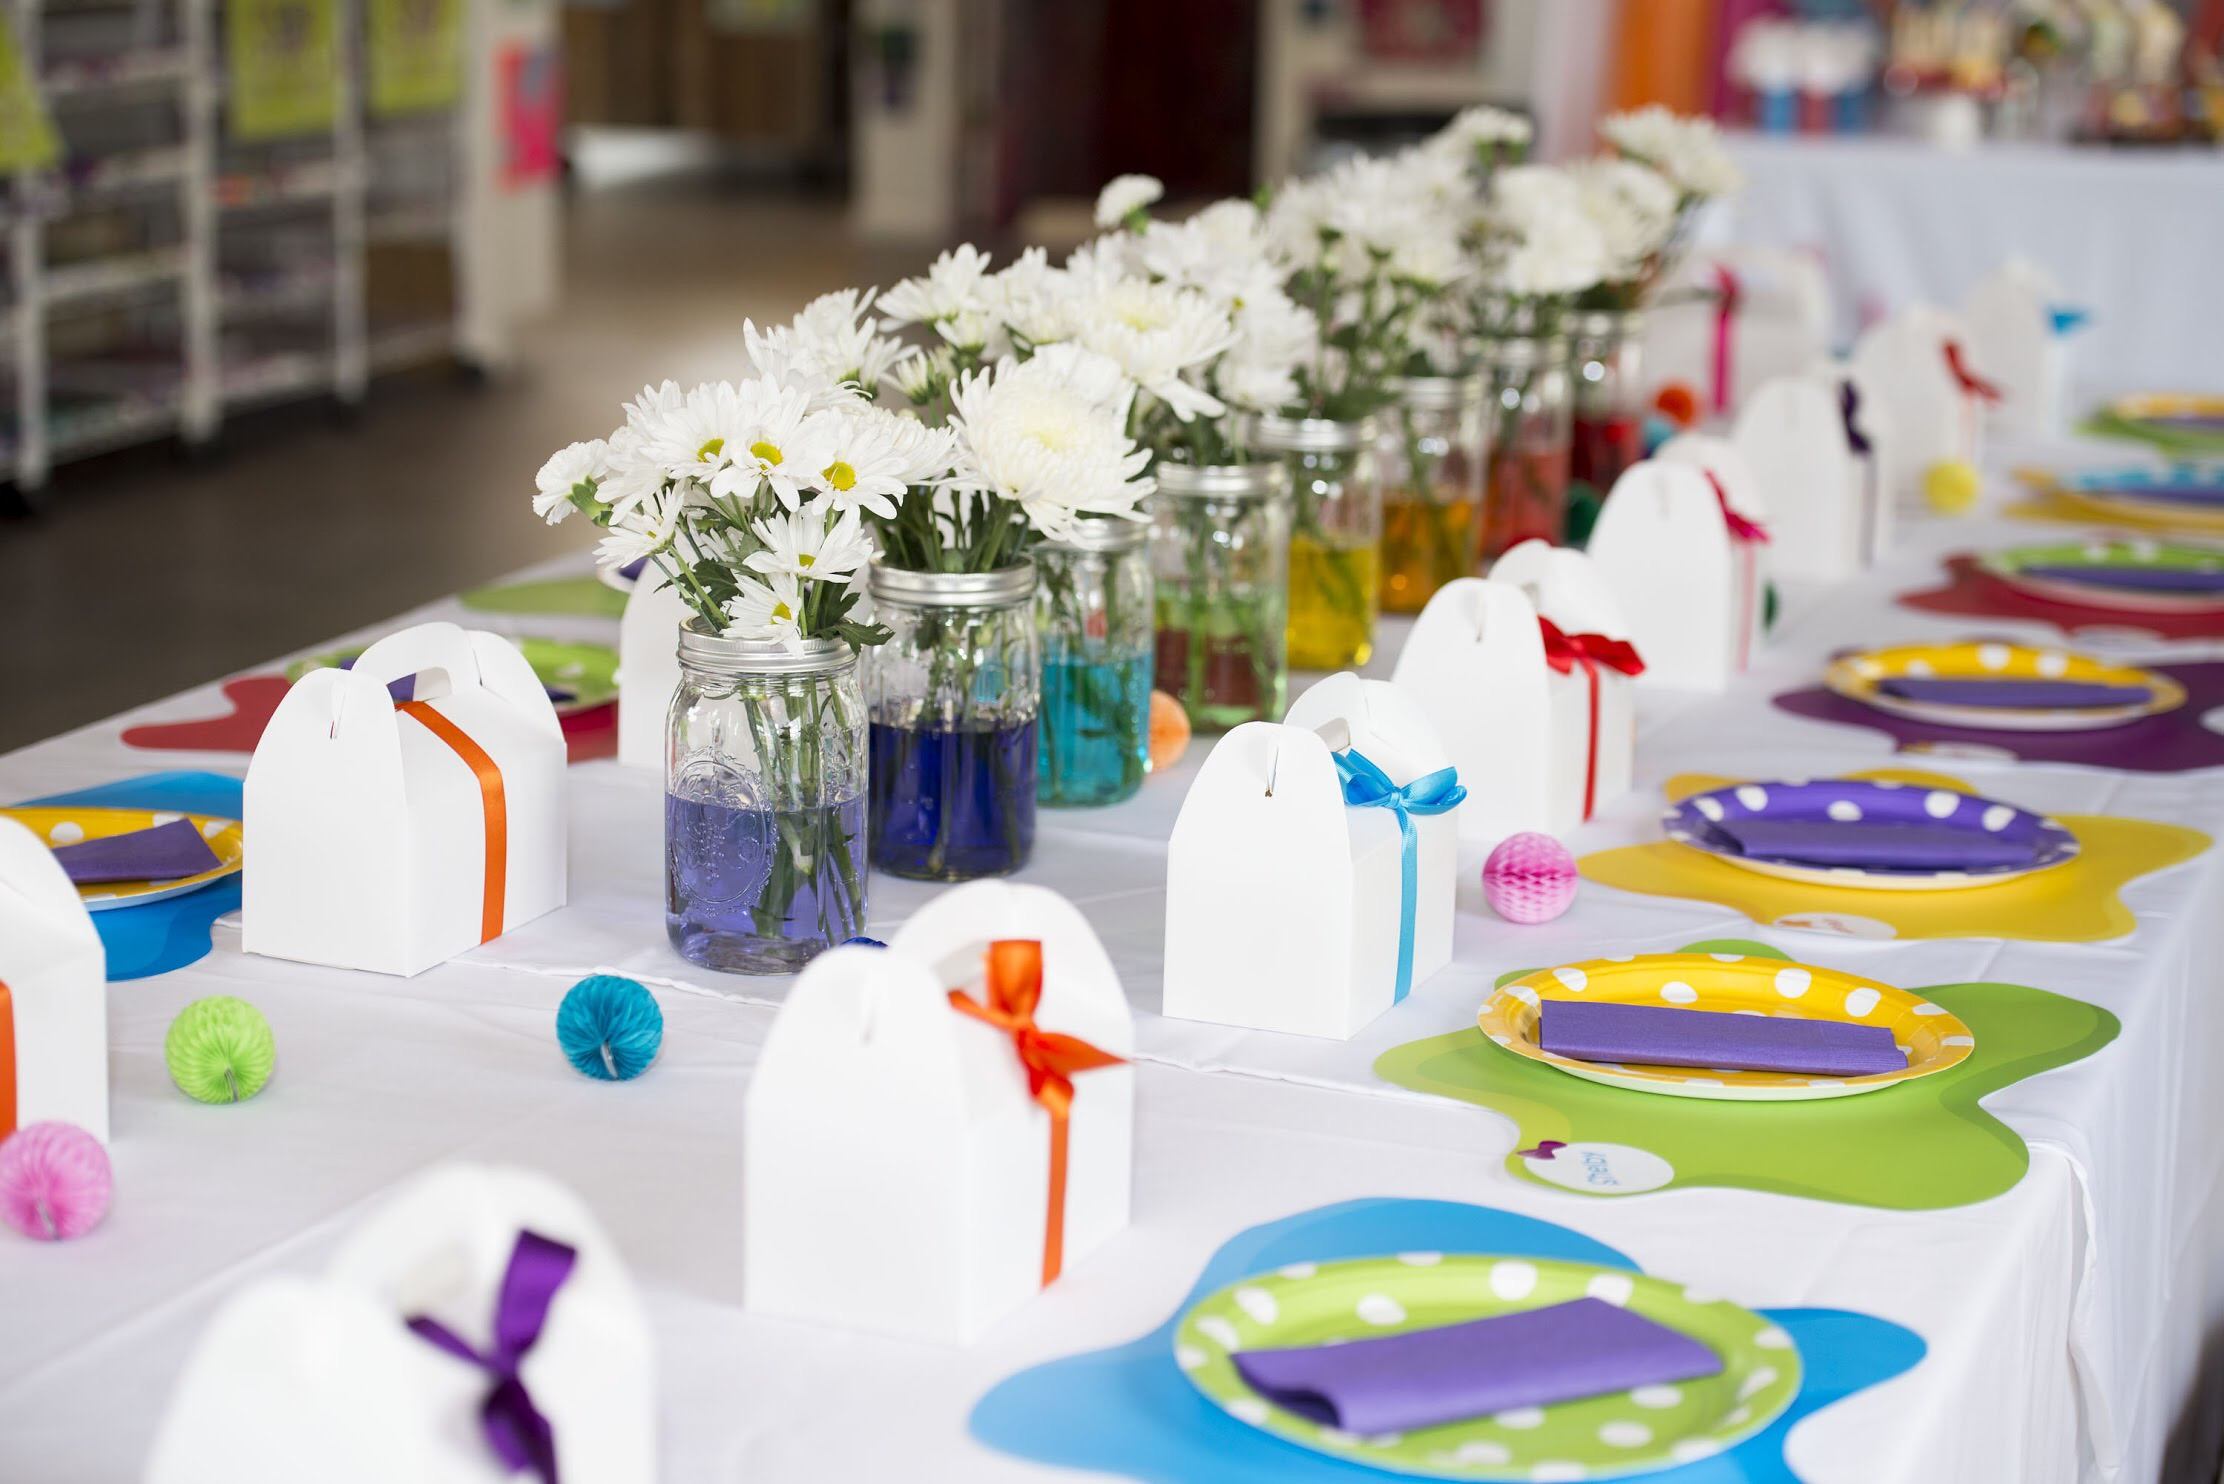 Love the addition of the rainbow colored waters for the flowers! So simple and so sweet! See all the art themed party ideas on Mint Event Design www.minteventdesign.com #kidsparty #kidspartyideas #birthdaypartyideas #artparty #rainbowparty